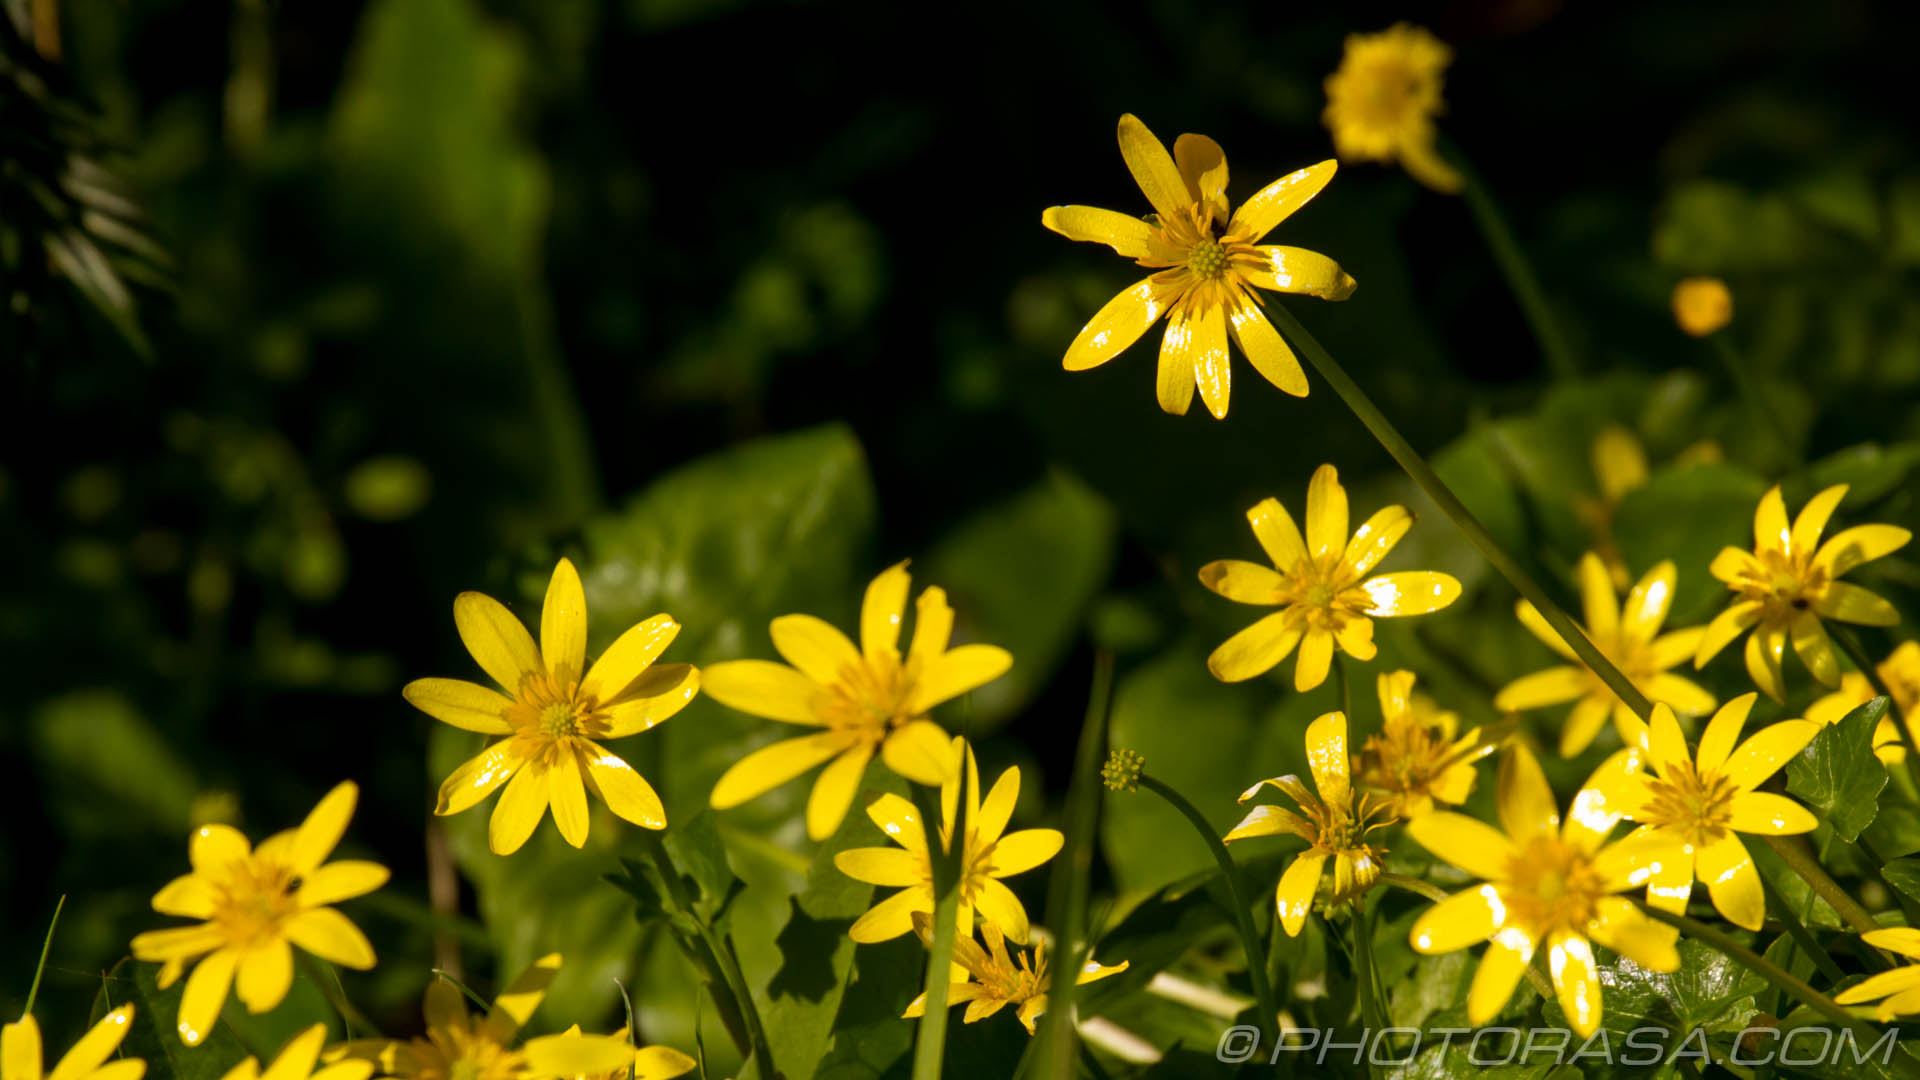 http://photorasa.com/group-of-buttercups/